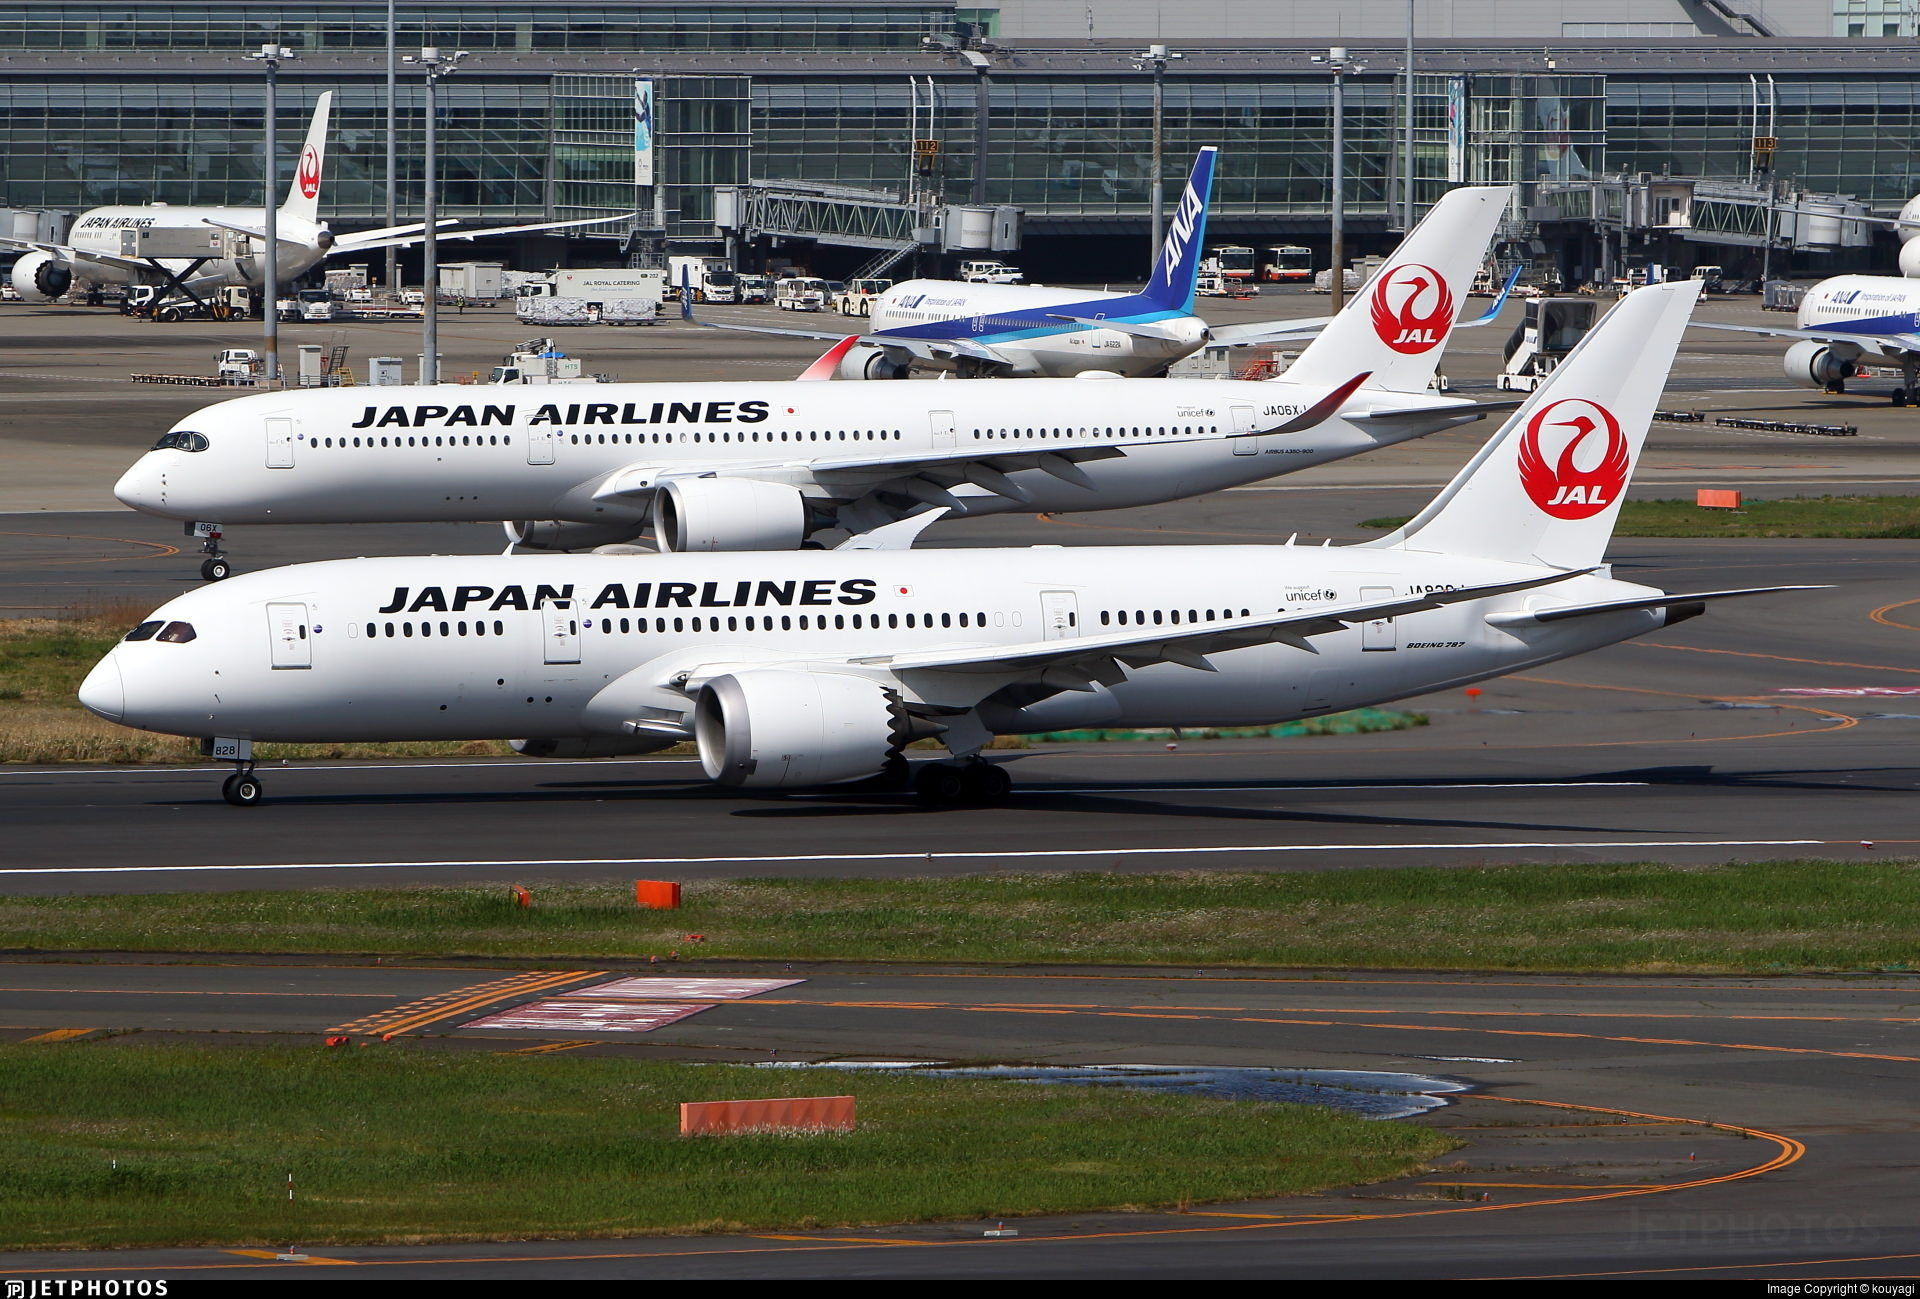 A Japan Airlines 787 and A350 in Tokyo